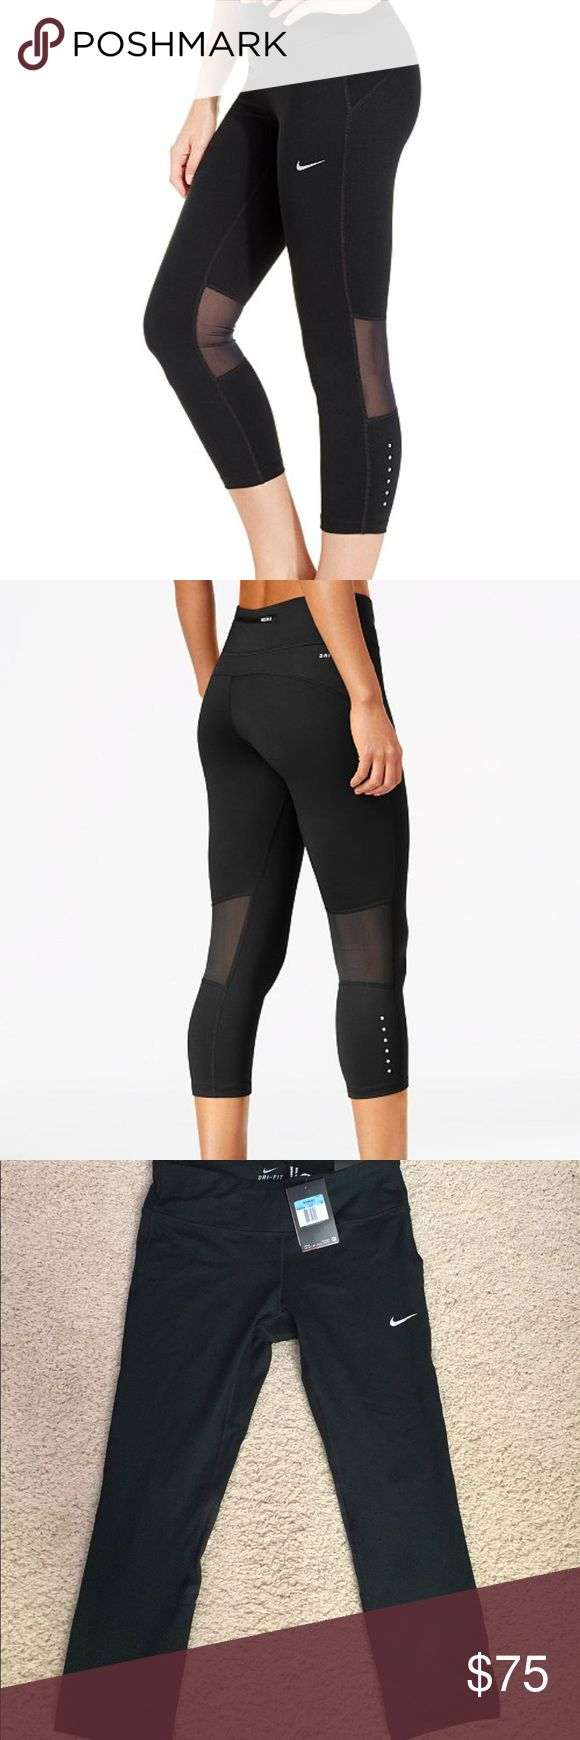 Nike epic run dri fit Capri leggings Nike epic run dri fit Capri leggings. Size medium. Brand new and never worn. Has mesh on the back. Super cute and comfortable. Retails for $75.00 plus taxes Nike Pants Ankle & Cropped